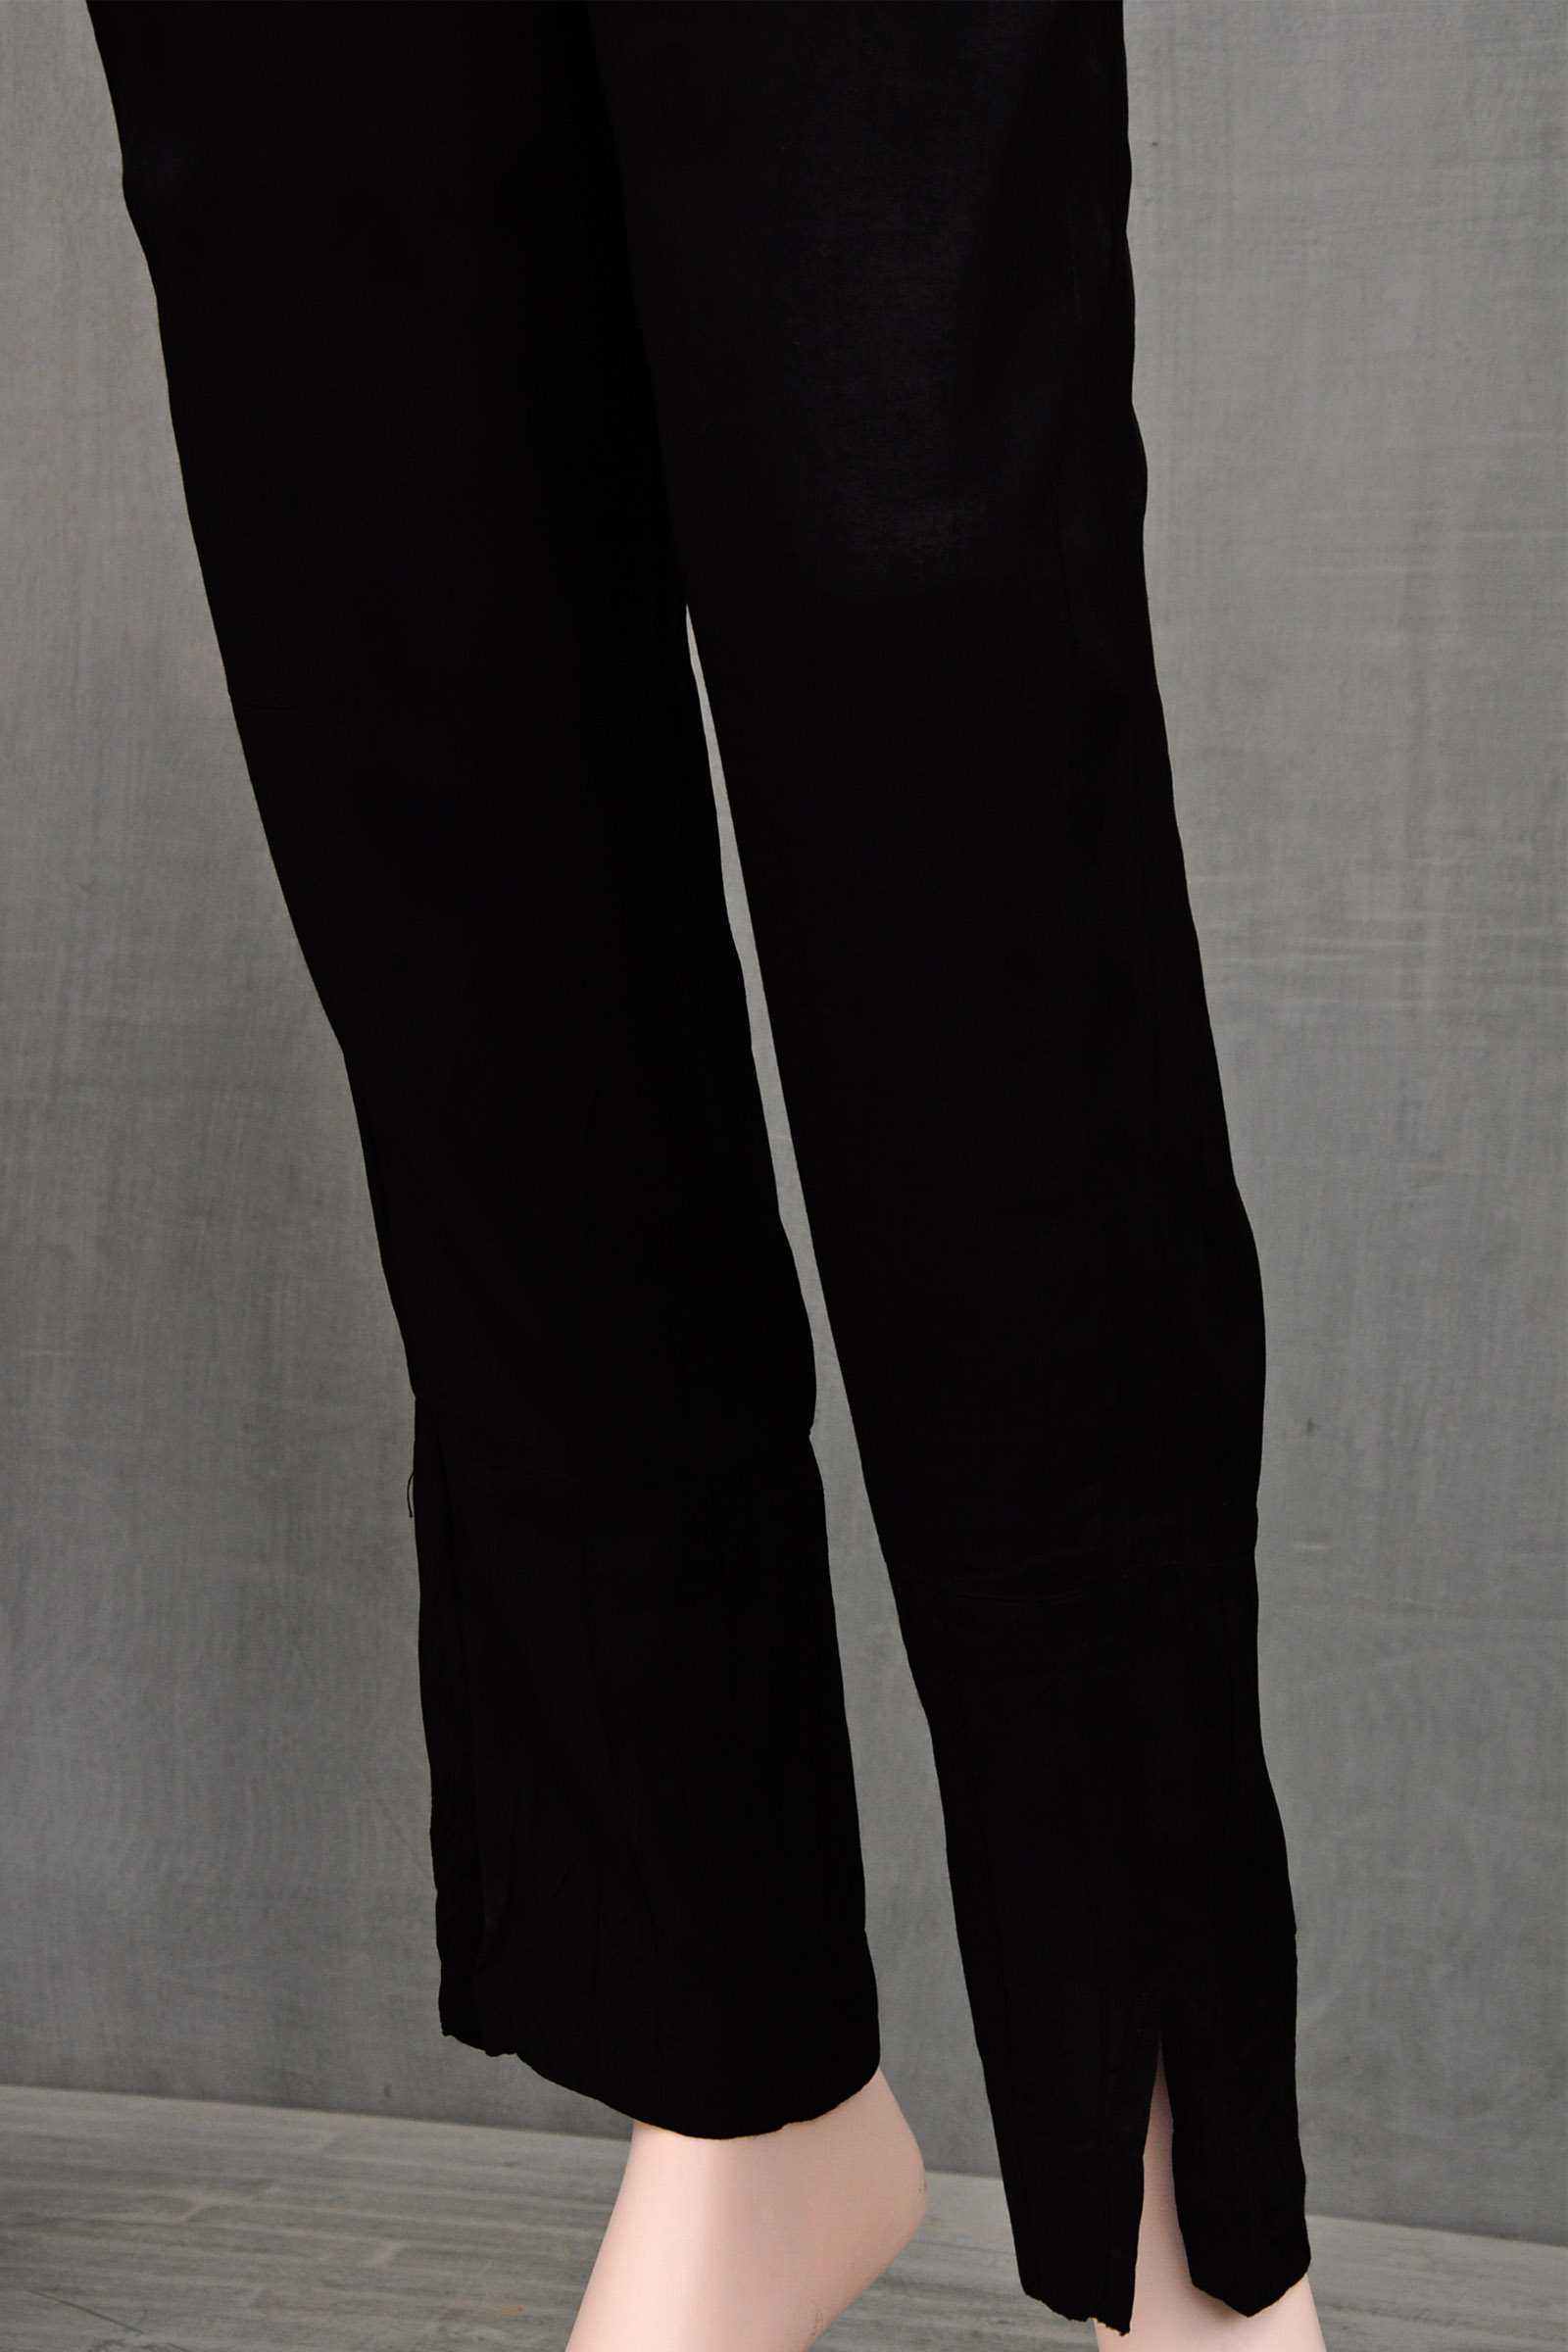 Bamboo Silk Black Assam Silk Cigarette Pant